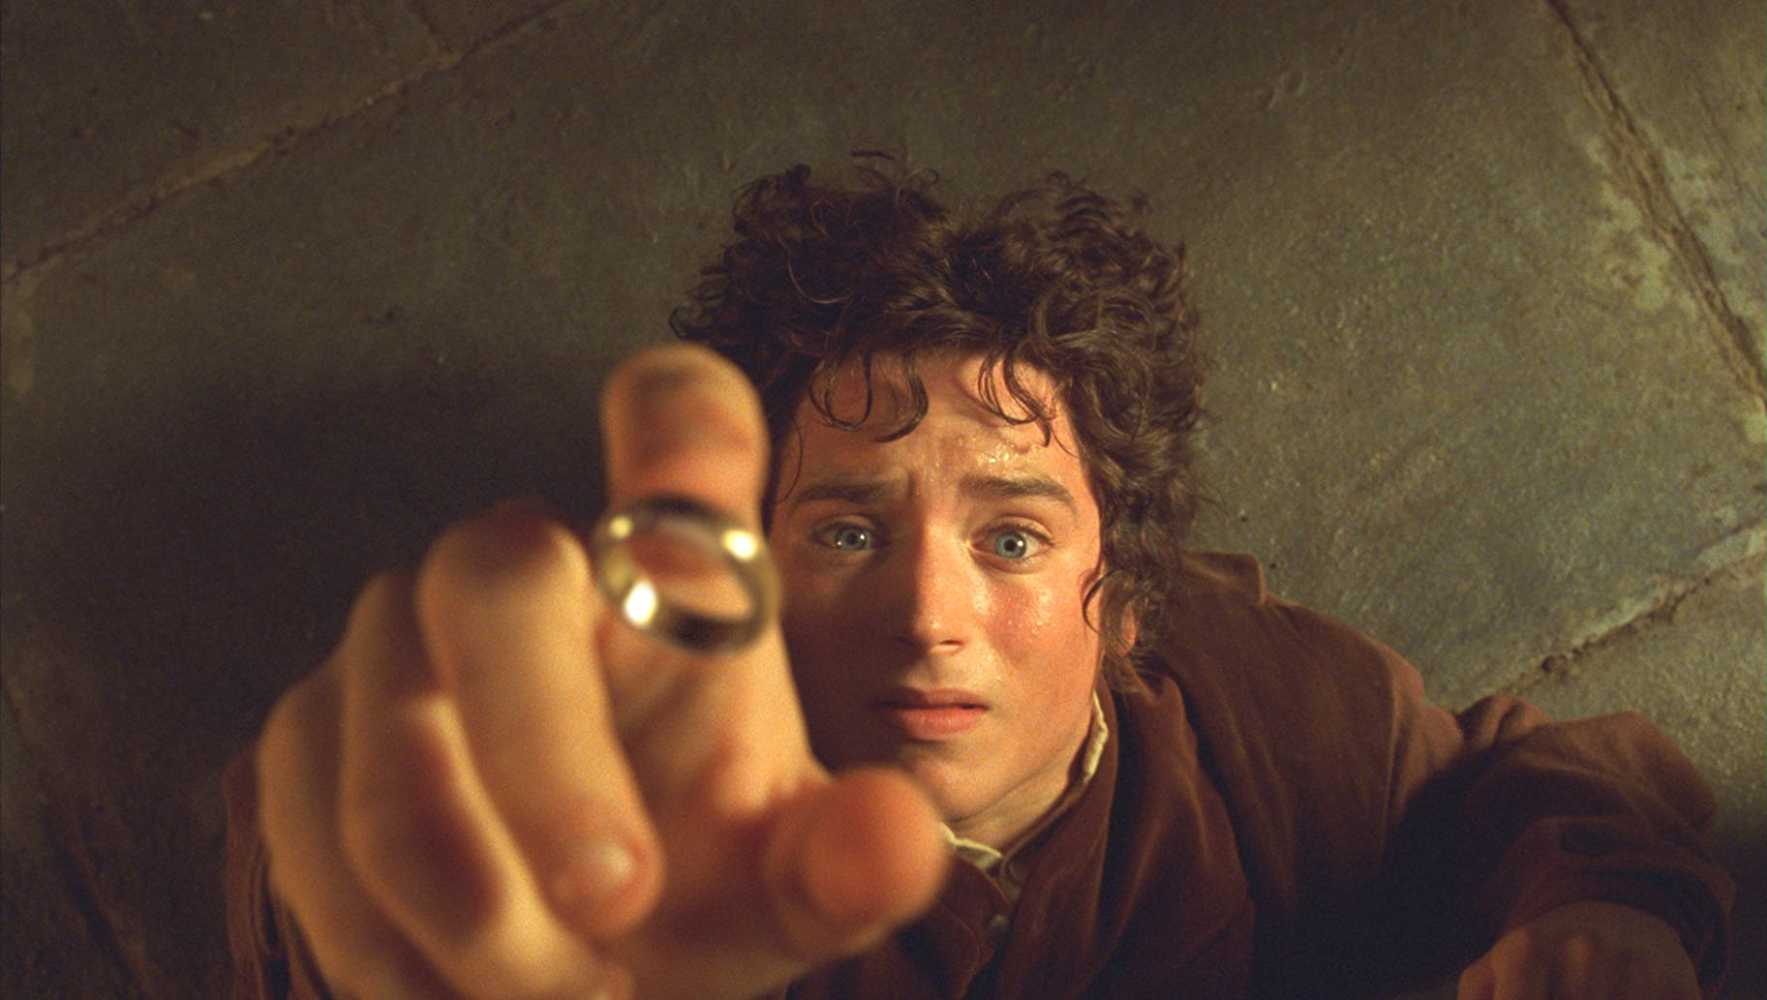 Elijah Wood as Frodo in 'The Lord of the Rings: The Fellowship of the Ring'. (Source: IMDB)